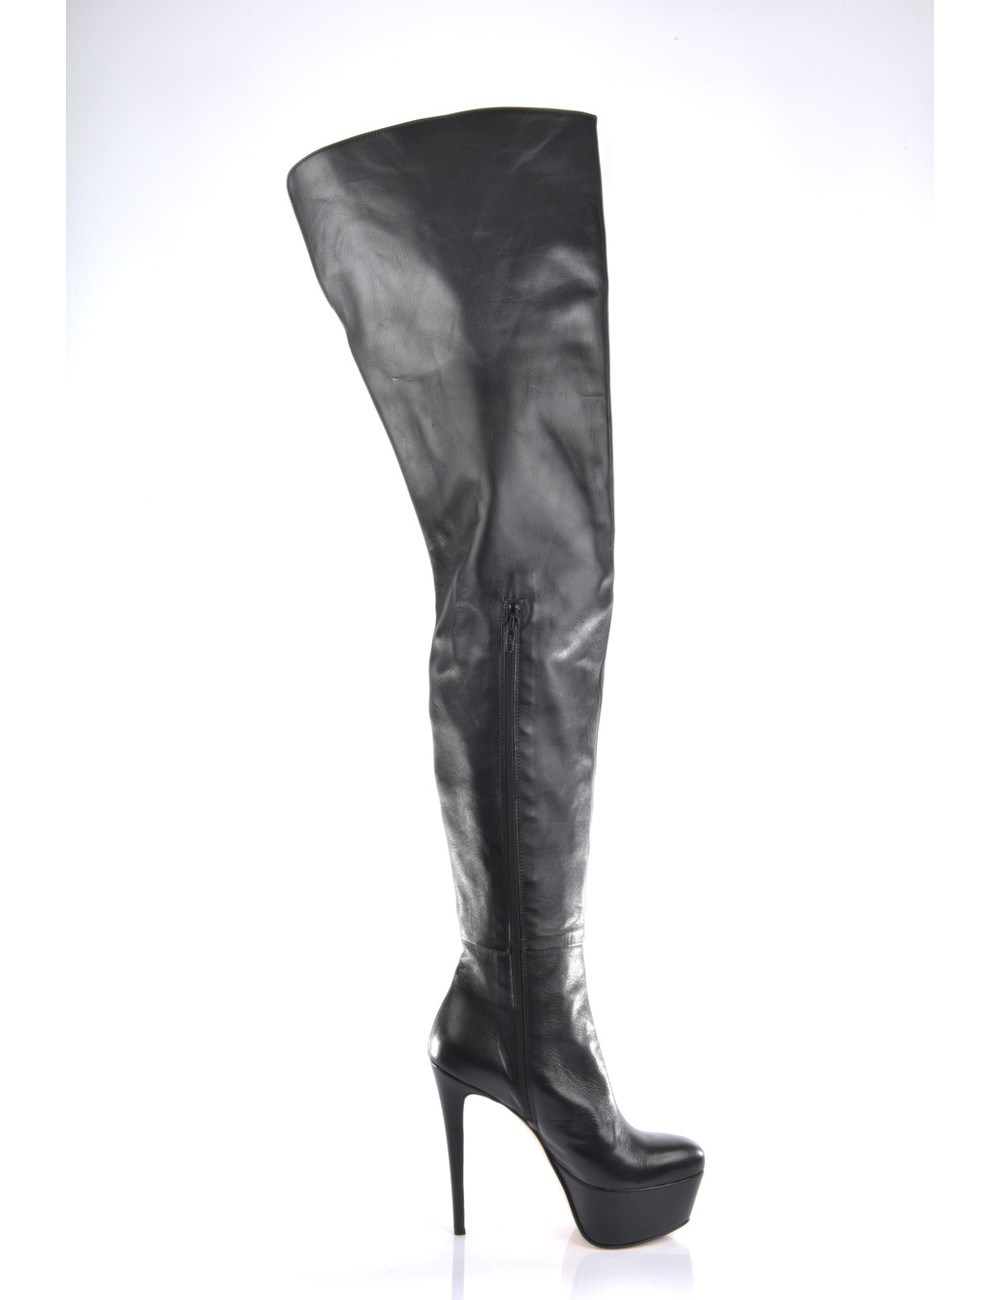 High thigh boots with platform heels in